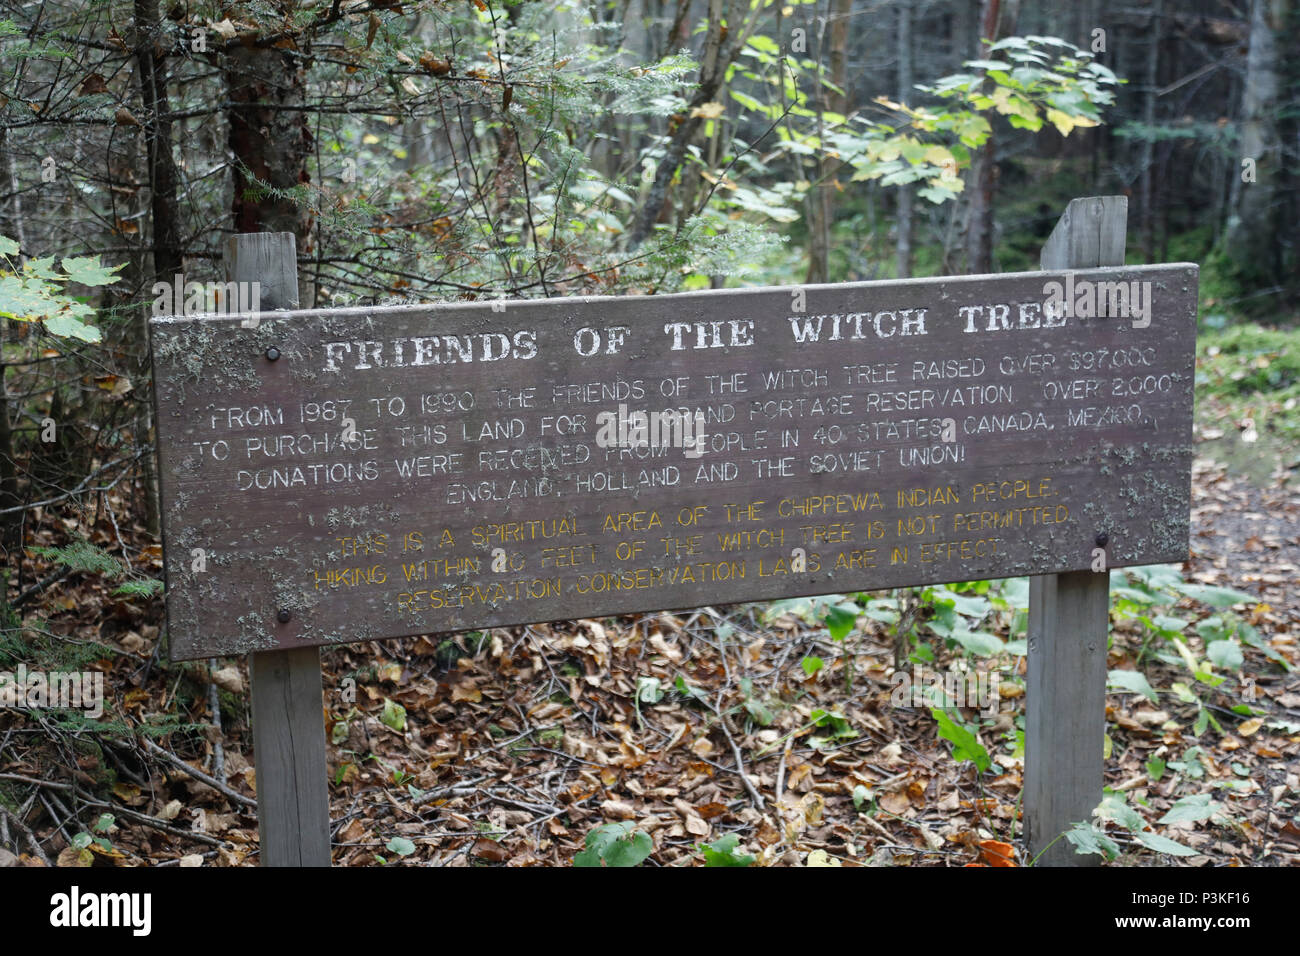 Friends of Witch Tree sign, Grand Portage, Minnesota, USA Stock Photo